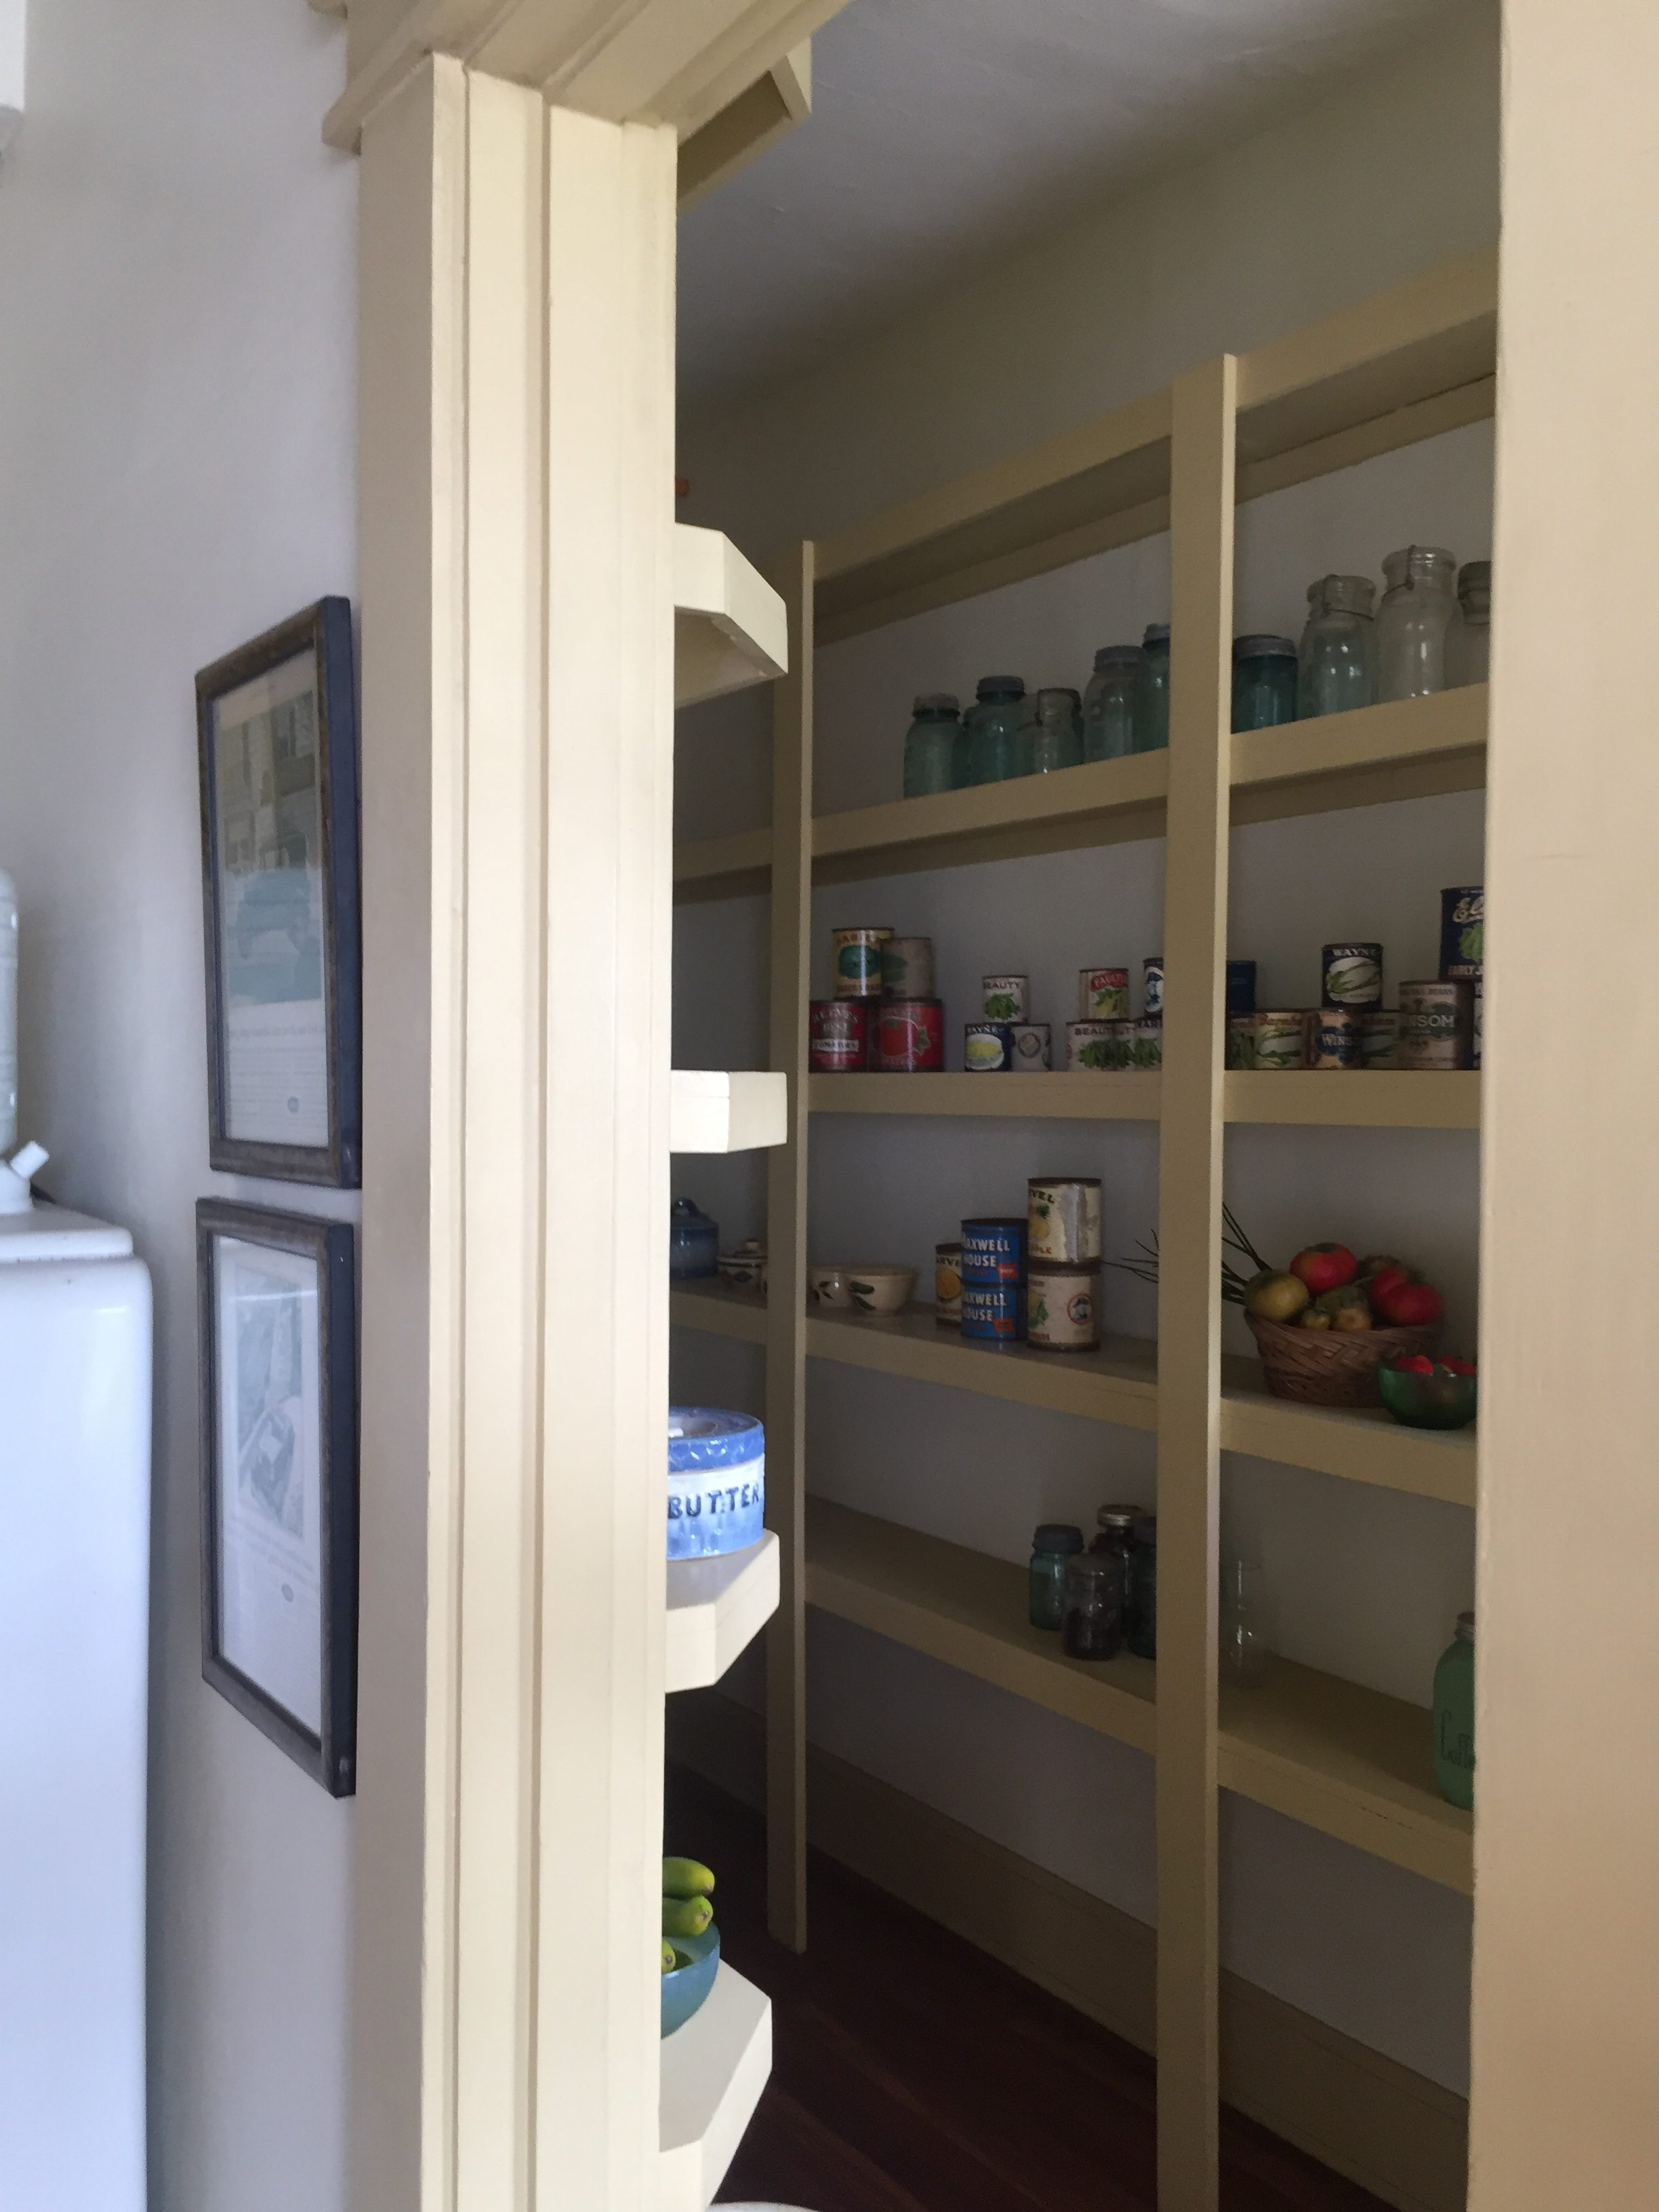 This is the pantry.